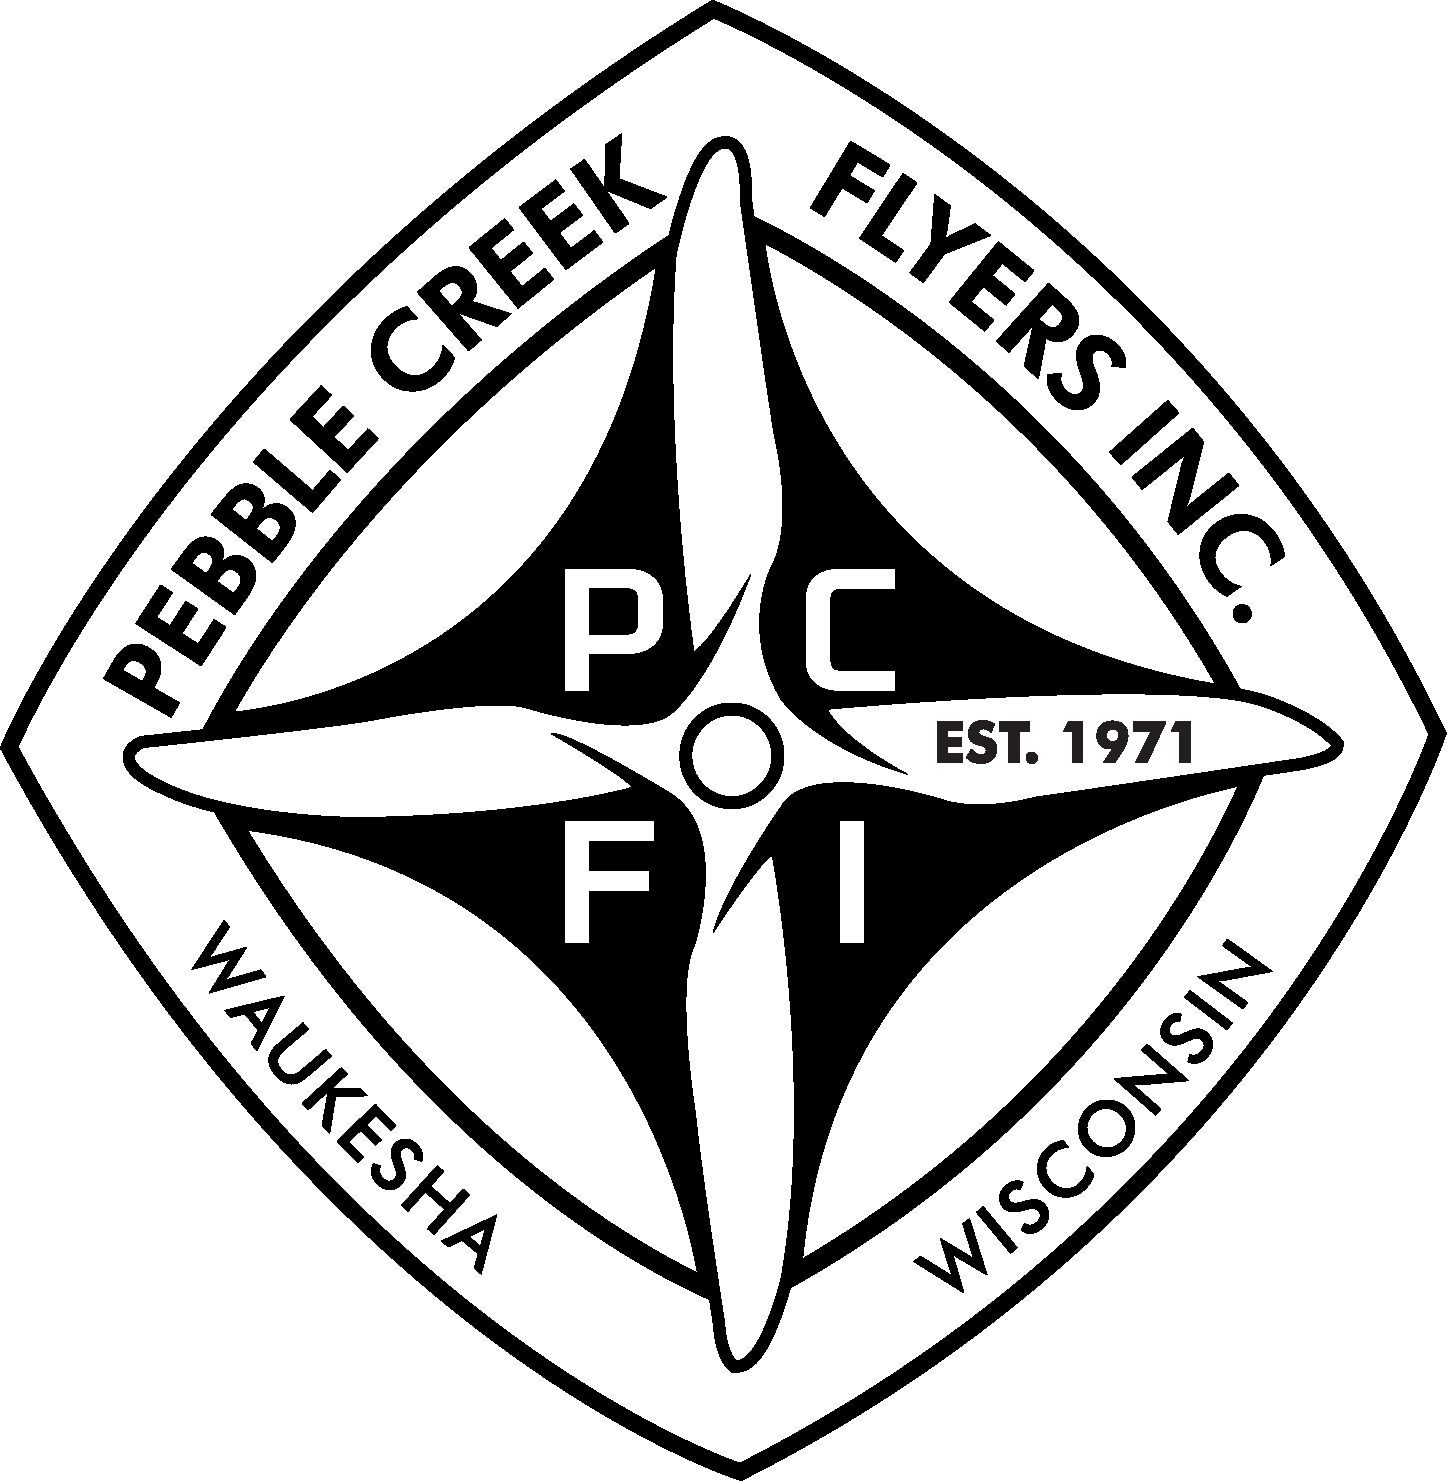 Pebble Creek Flyers